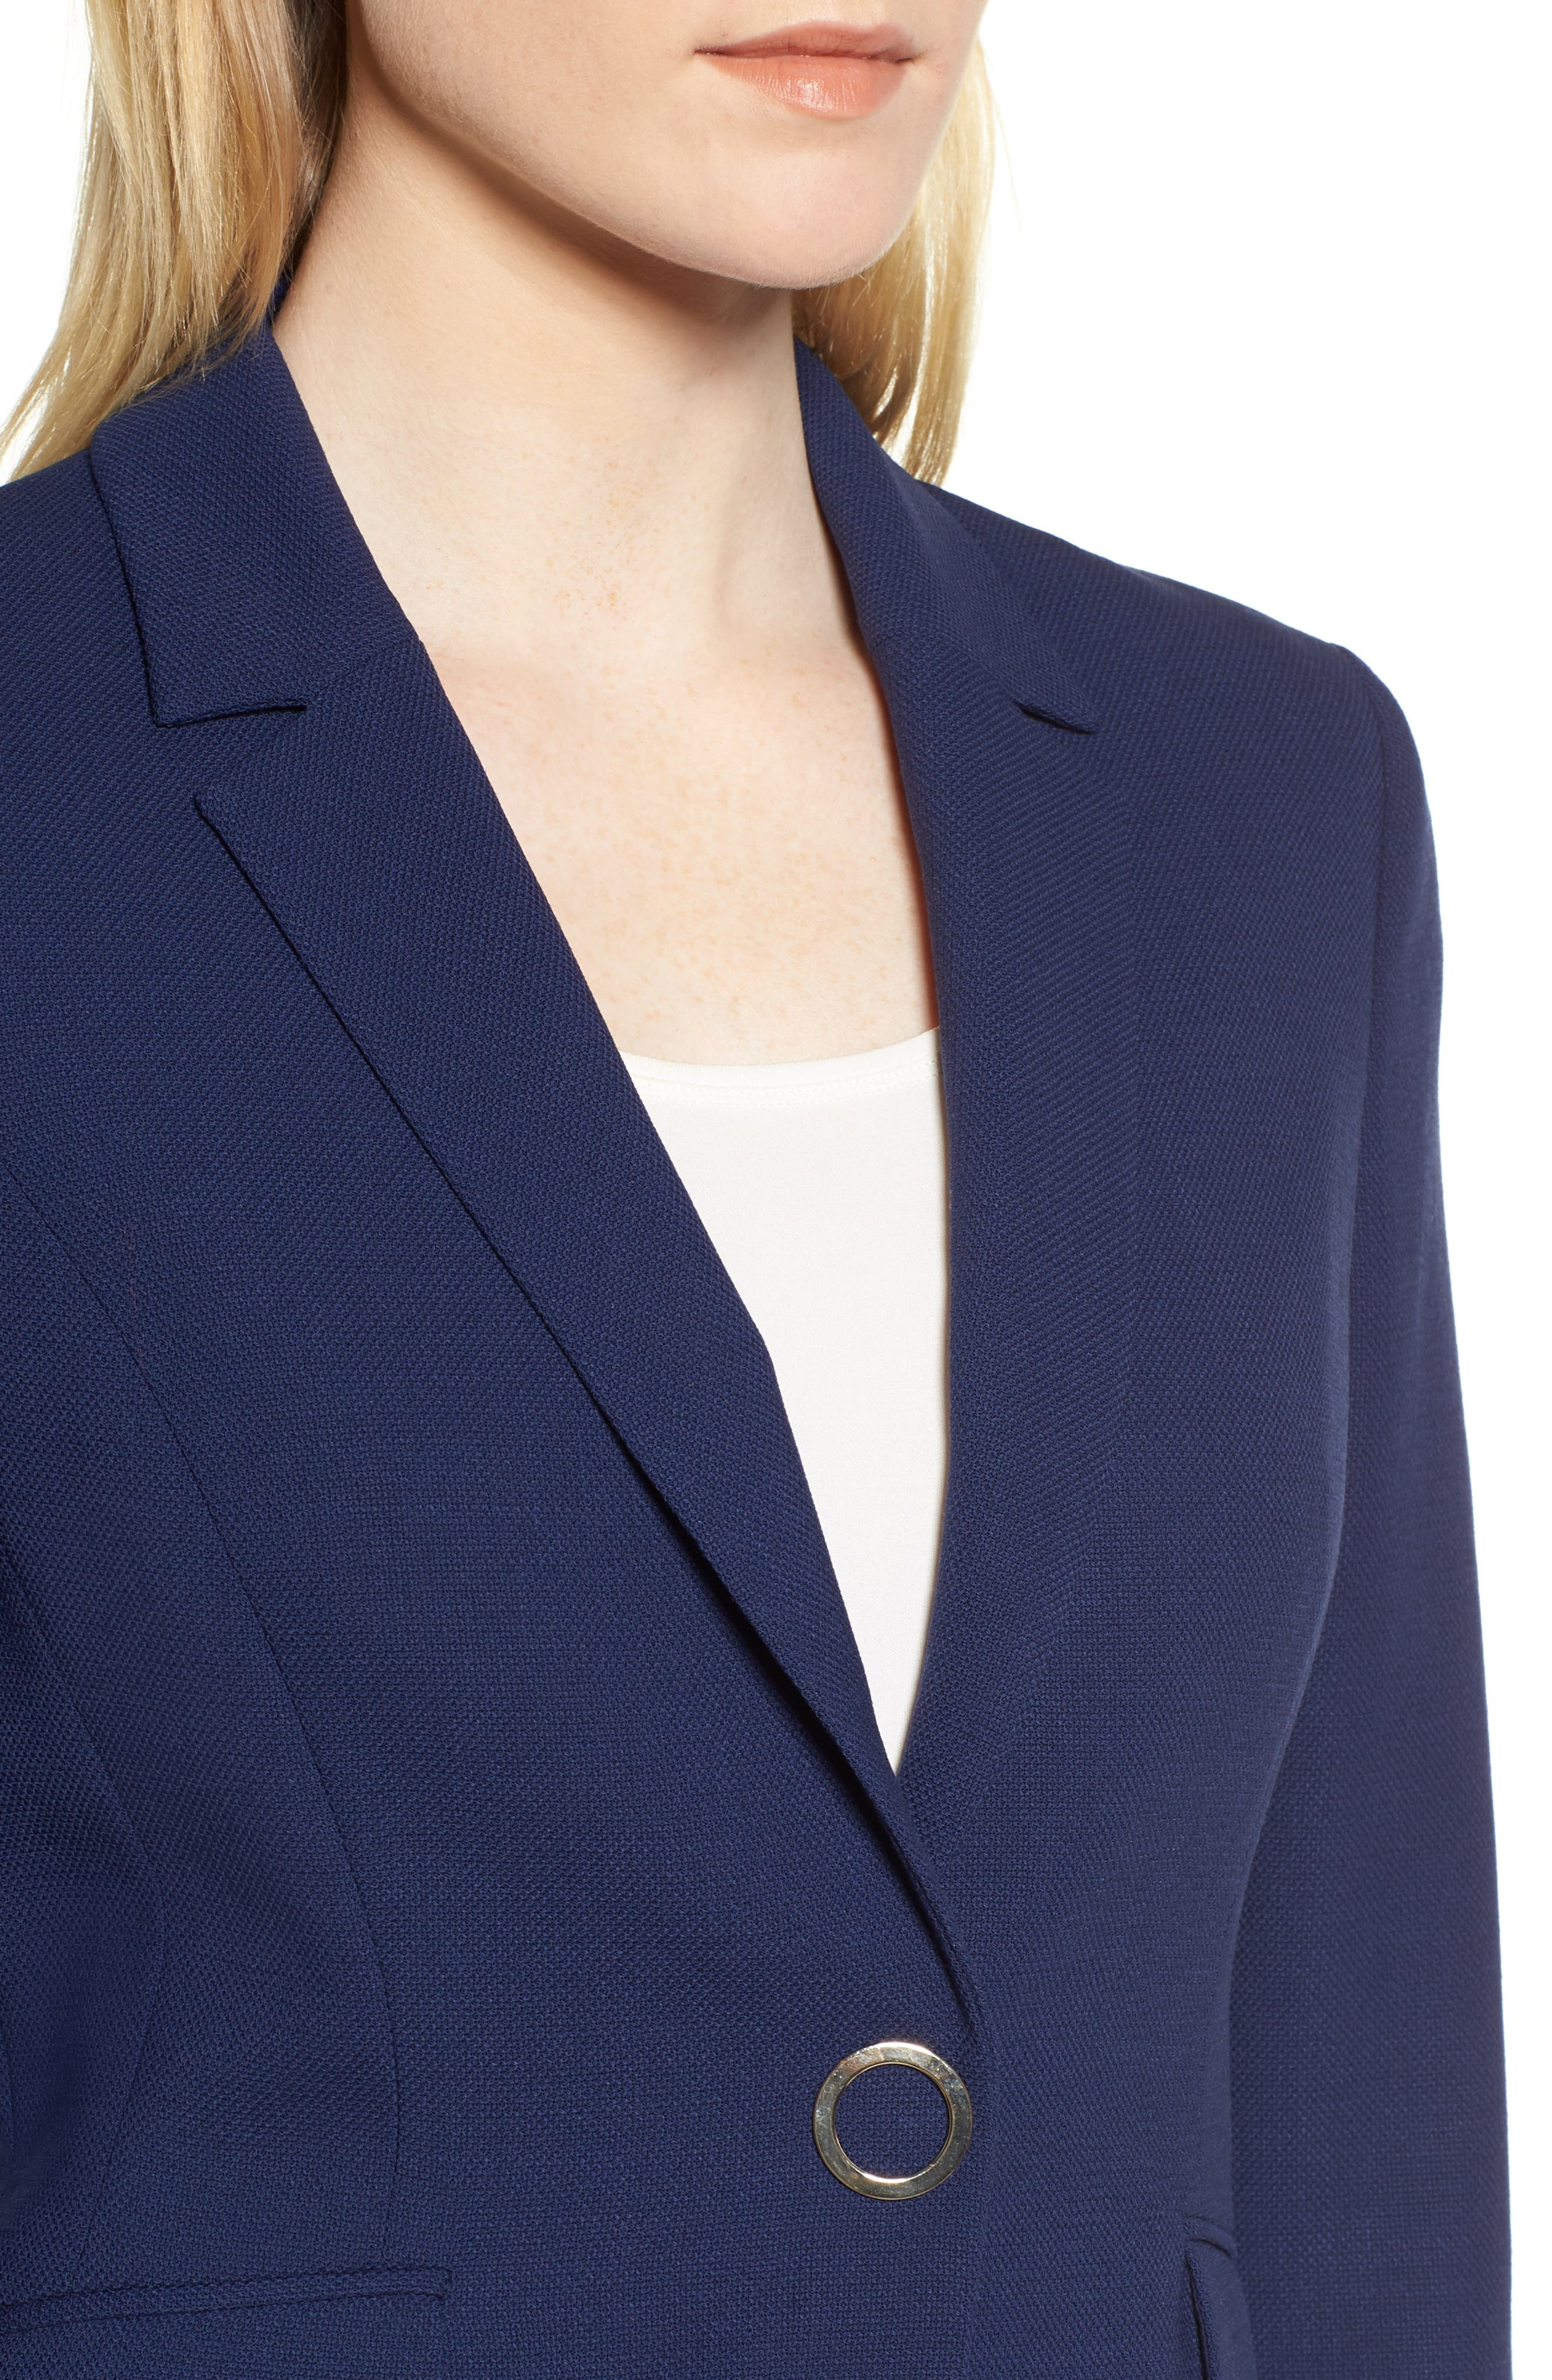 Jibalena Textured Stretch Wool Suit Jacket,                             Alternate thumbnail 4, color,                             Nautical